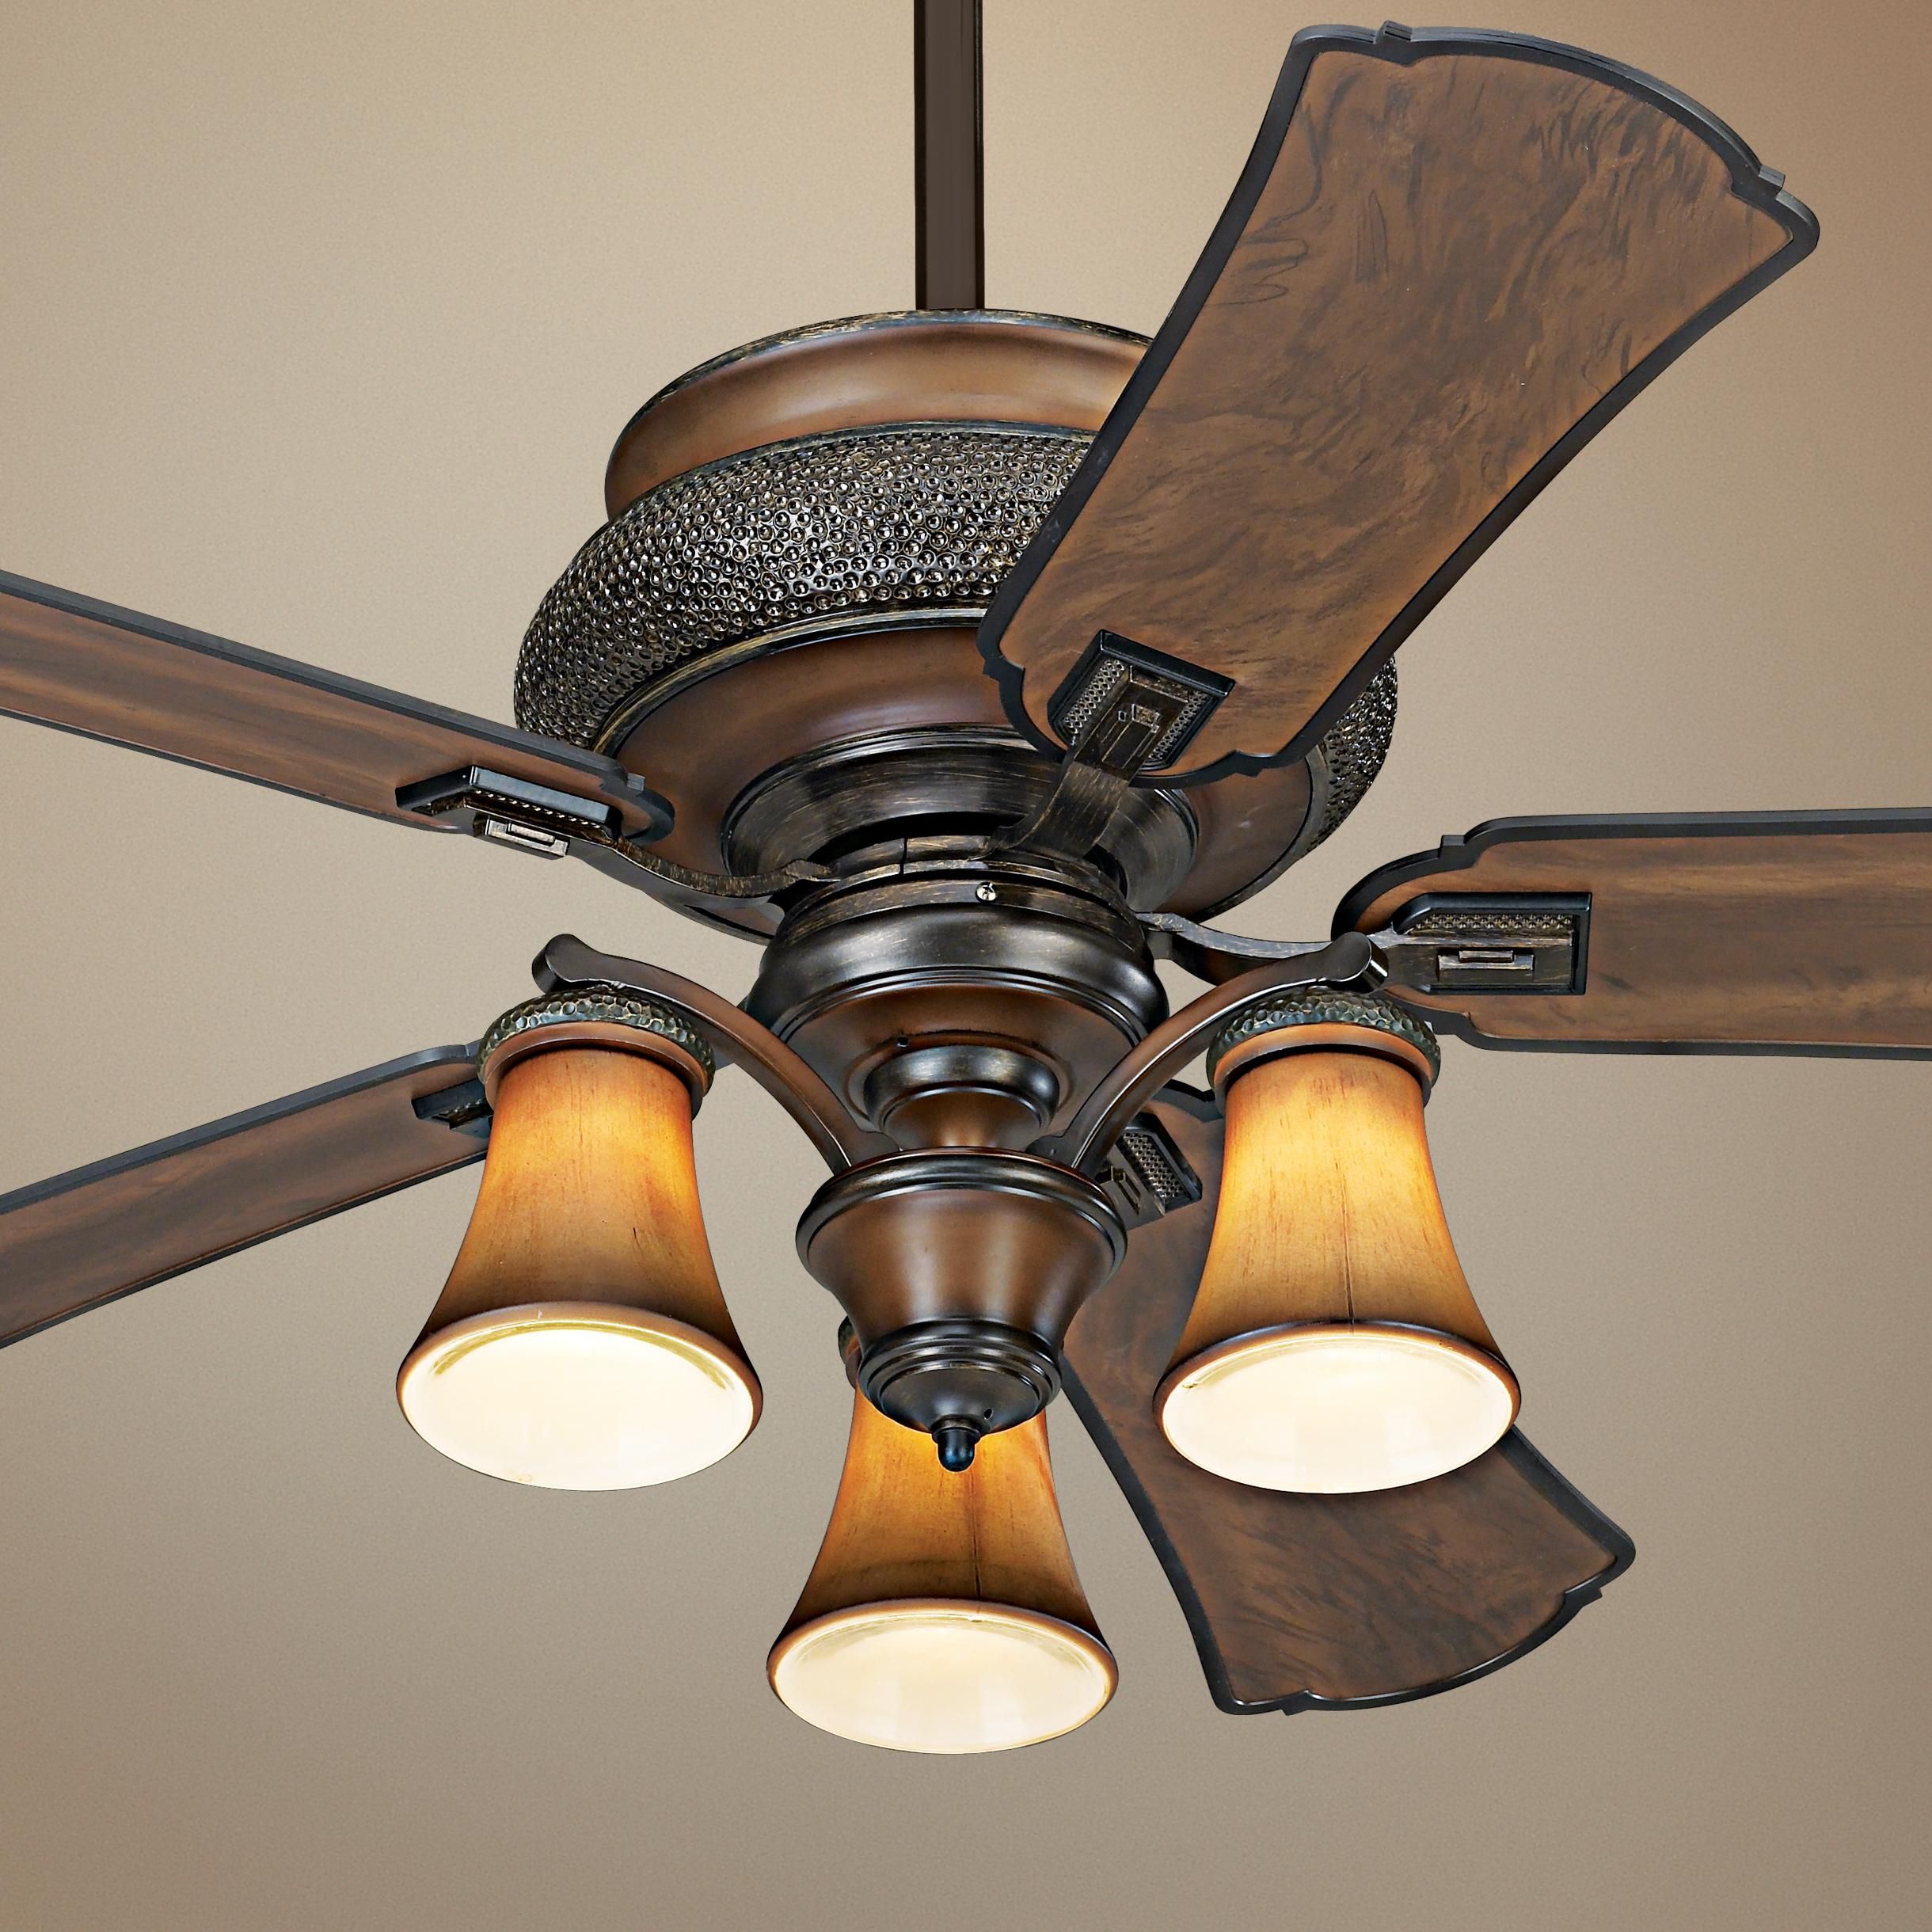 with mount style ceilings ridge of large g engaging size fan dynastyteam flush ceiling craftsman images lights mission fans info pendant